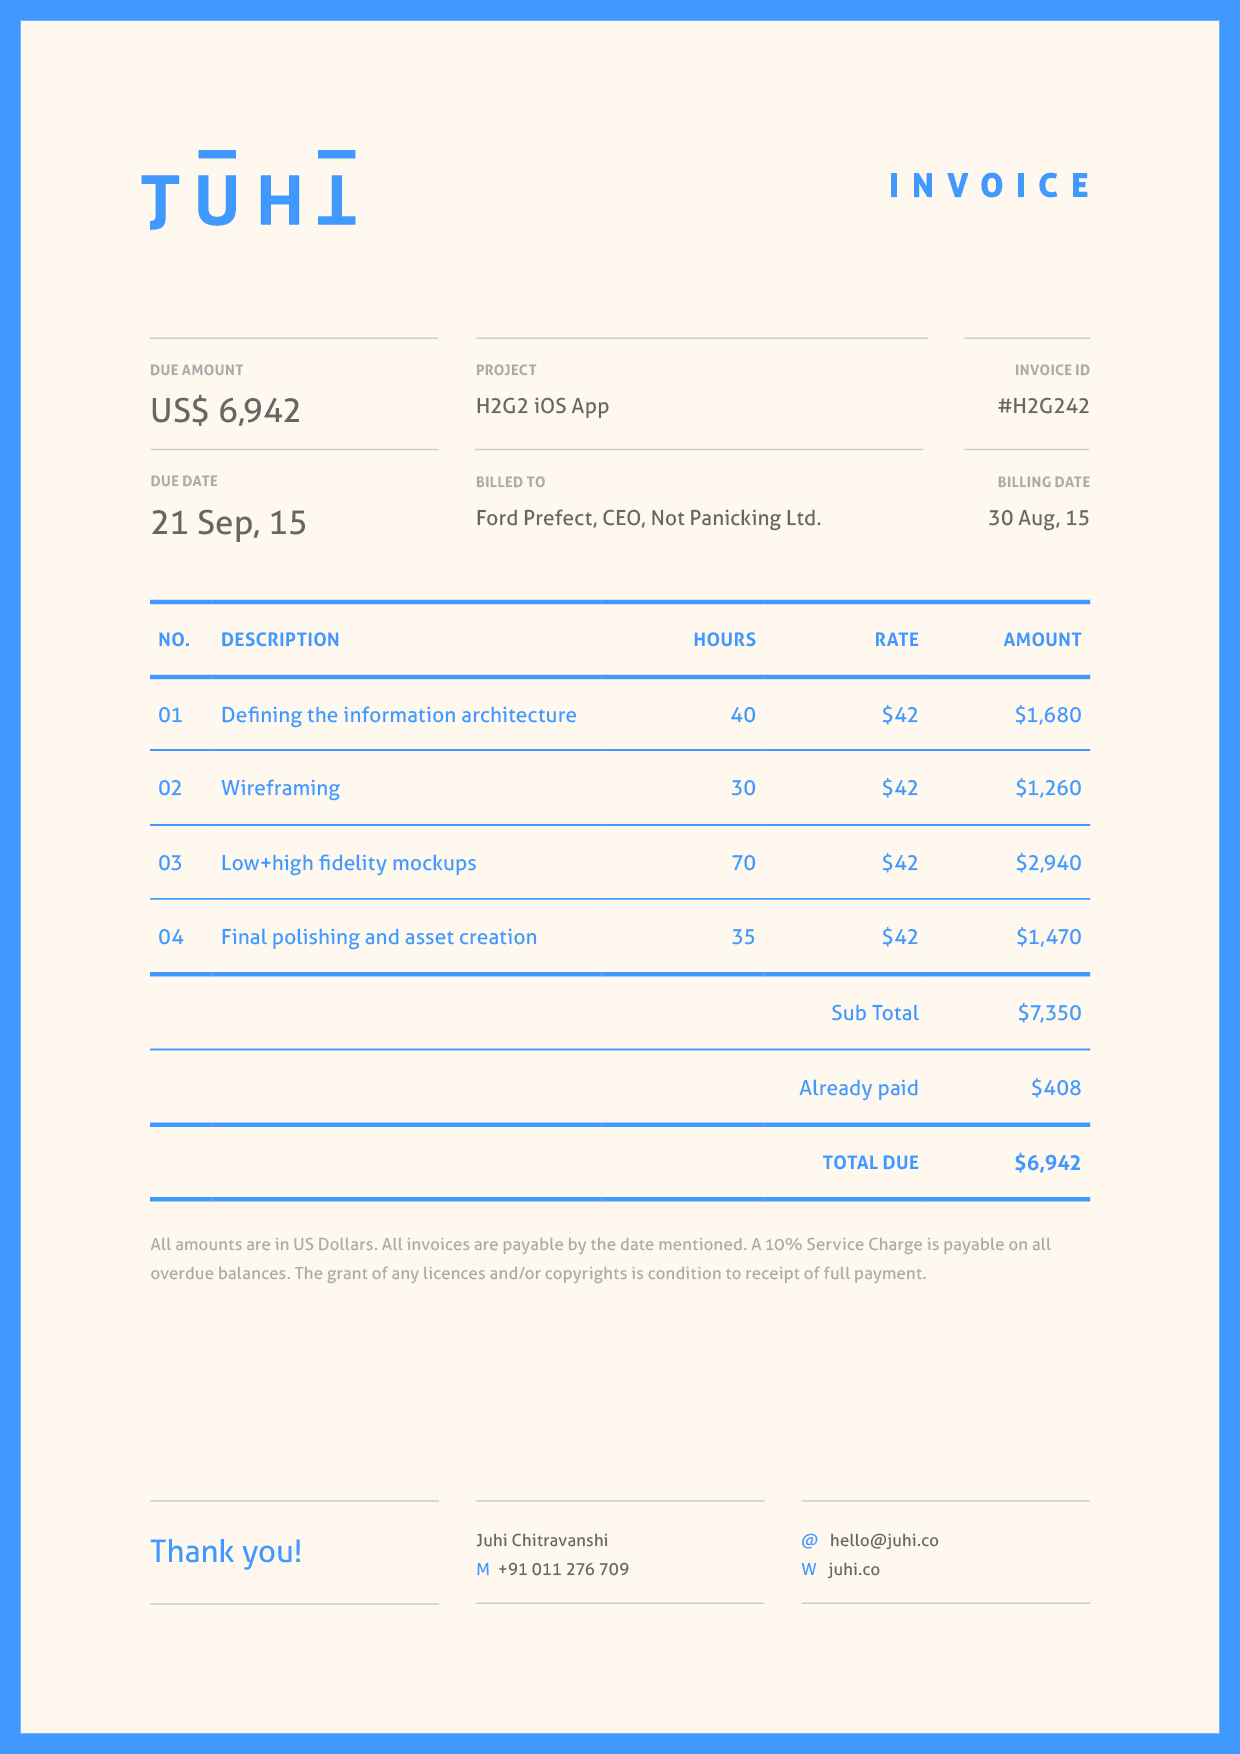 Hucareus  Winning Dont Hold Back On Your Invoice  Inspiring Designs  With Interesting Invoice By Juhi Chitravanshi Follow With Endearing Private Car Sales Receipt Also Property Tax Receipts In Addition Sample Receipt For Cash And Printable Receipt Of Payment As Well As Registration Receipt Texas Additionally Gmail Read Receipt Plugin From Inspirationfeedcom With Hucareus  Interesting Dont Hold Back On Your Invoice  Inspiring Designs  With Endearing Invoice By Juhi Chitravanshi Follow And Winning Private Car Sales Receipt Also Property Tax Receipts In Addition Sample Receipt For Cash From Inspirationfeedcom